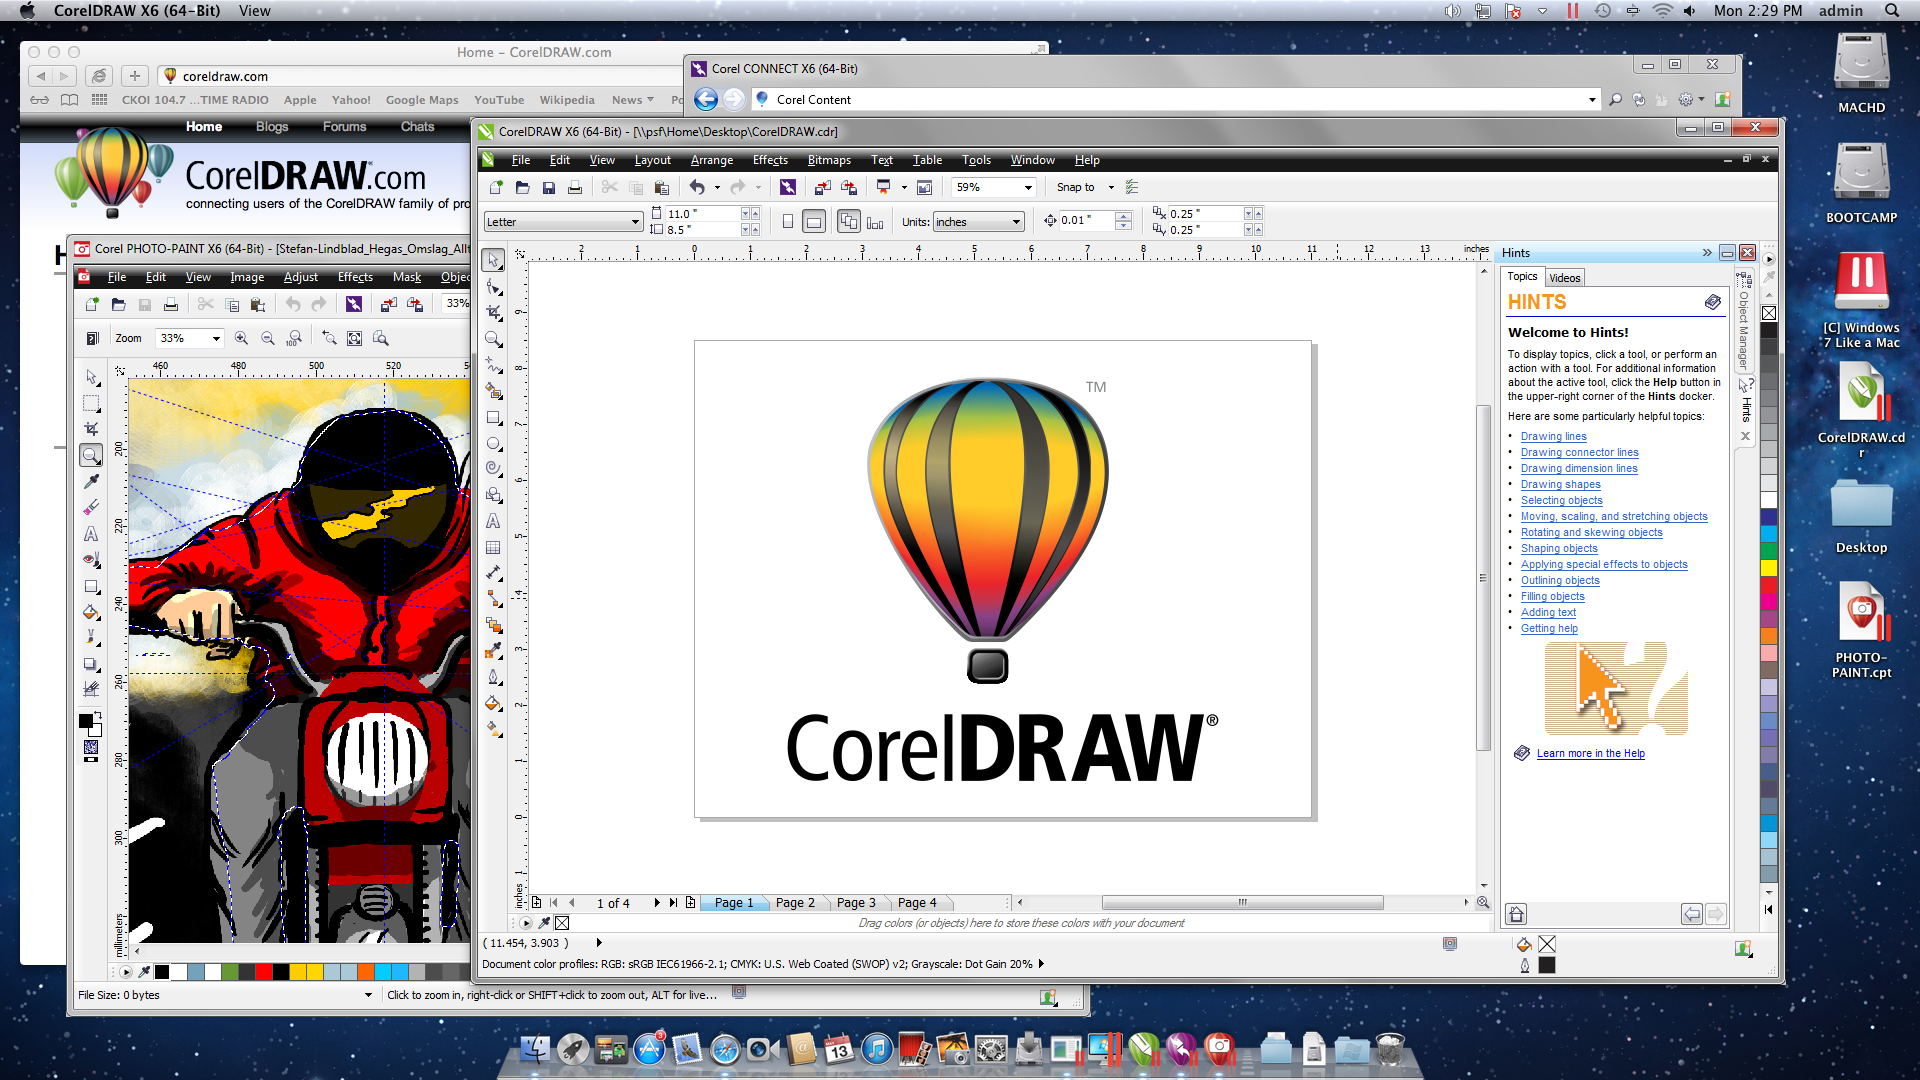 Corel draw version - You Can Run Coreldraw On A Mac G Rard On Graphics Blogs Coreldraw Community